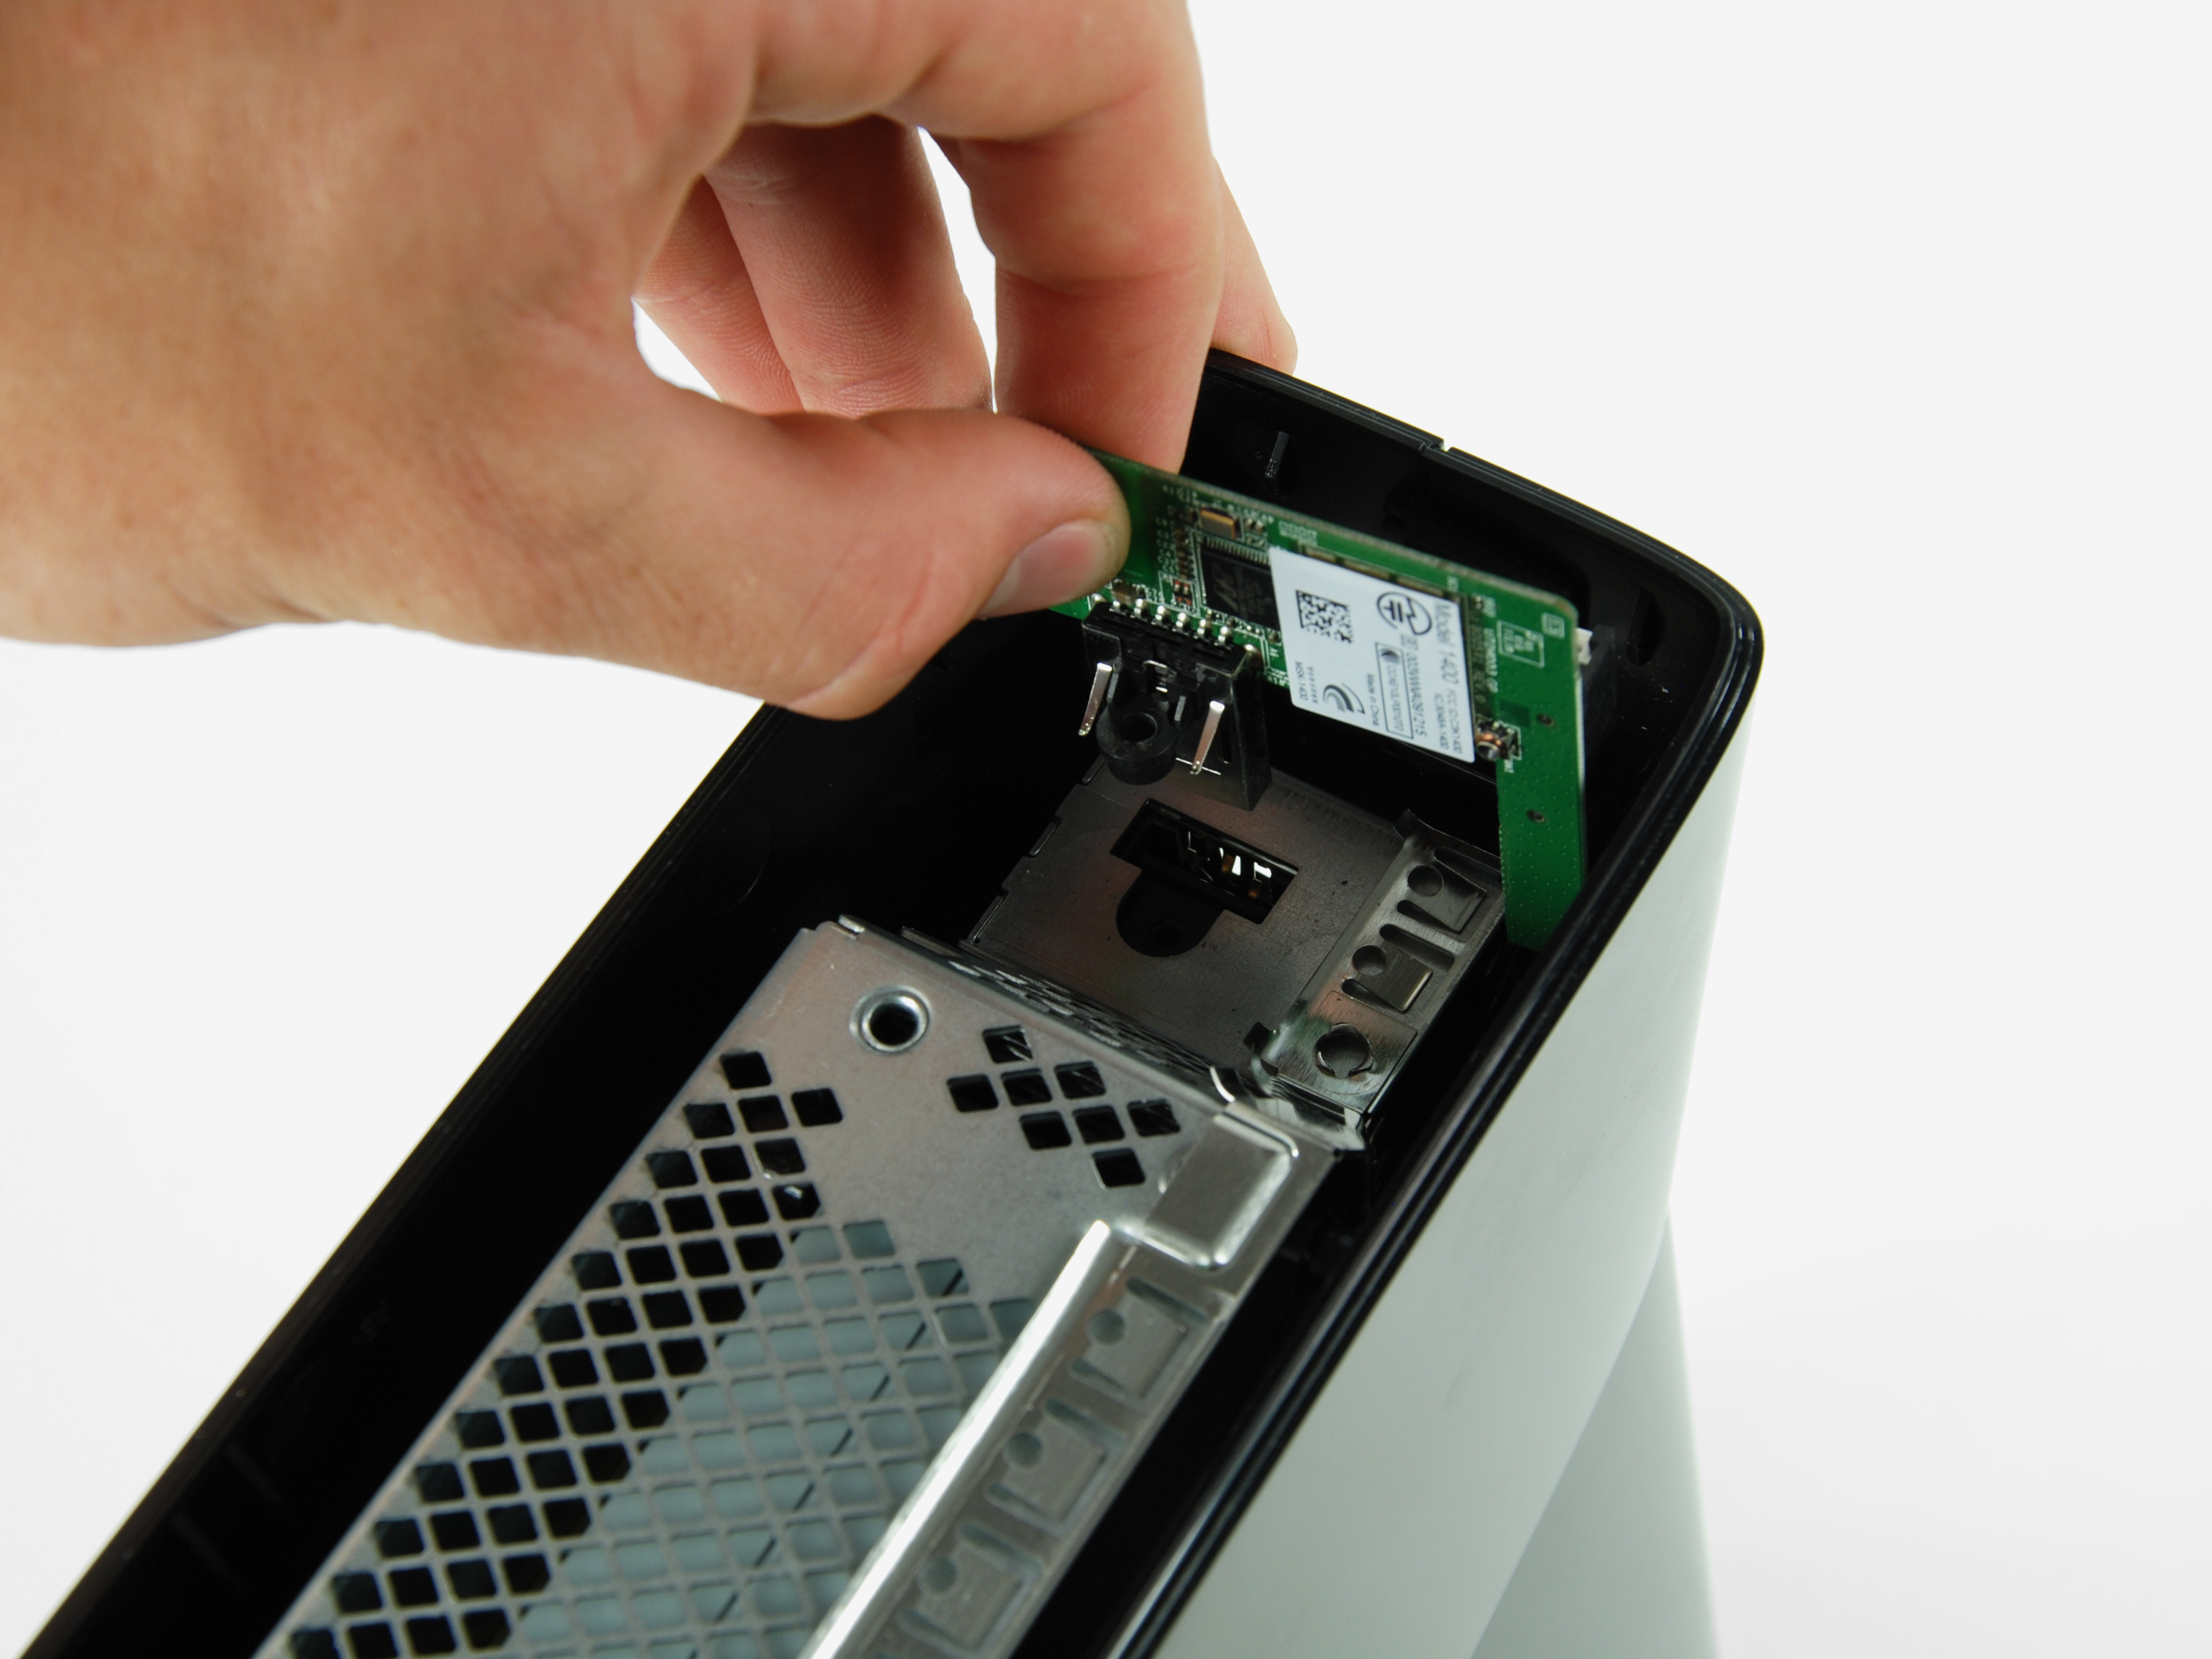 Xbox 360 S Wi Fi Board Replacement Ifixit Repair Guide